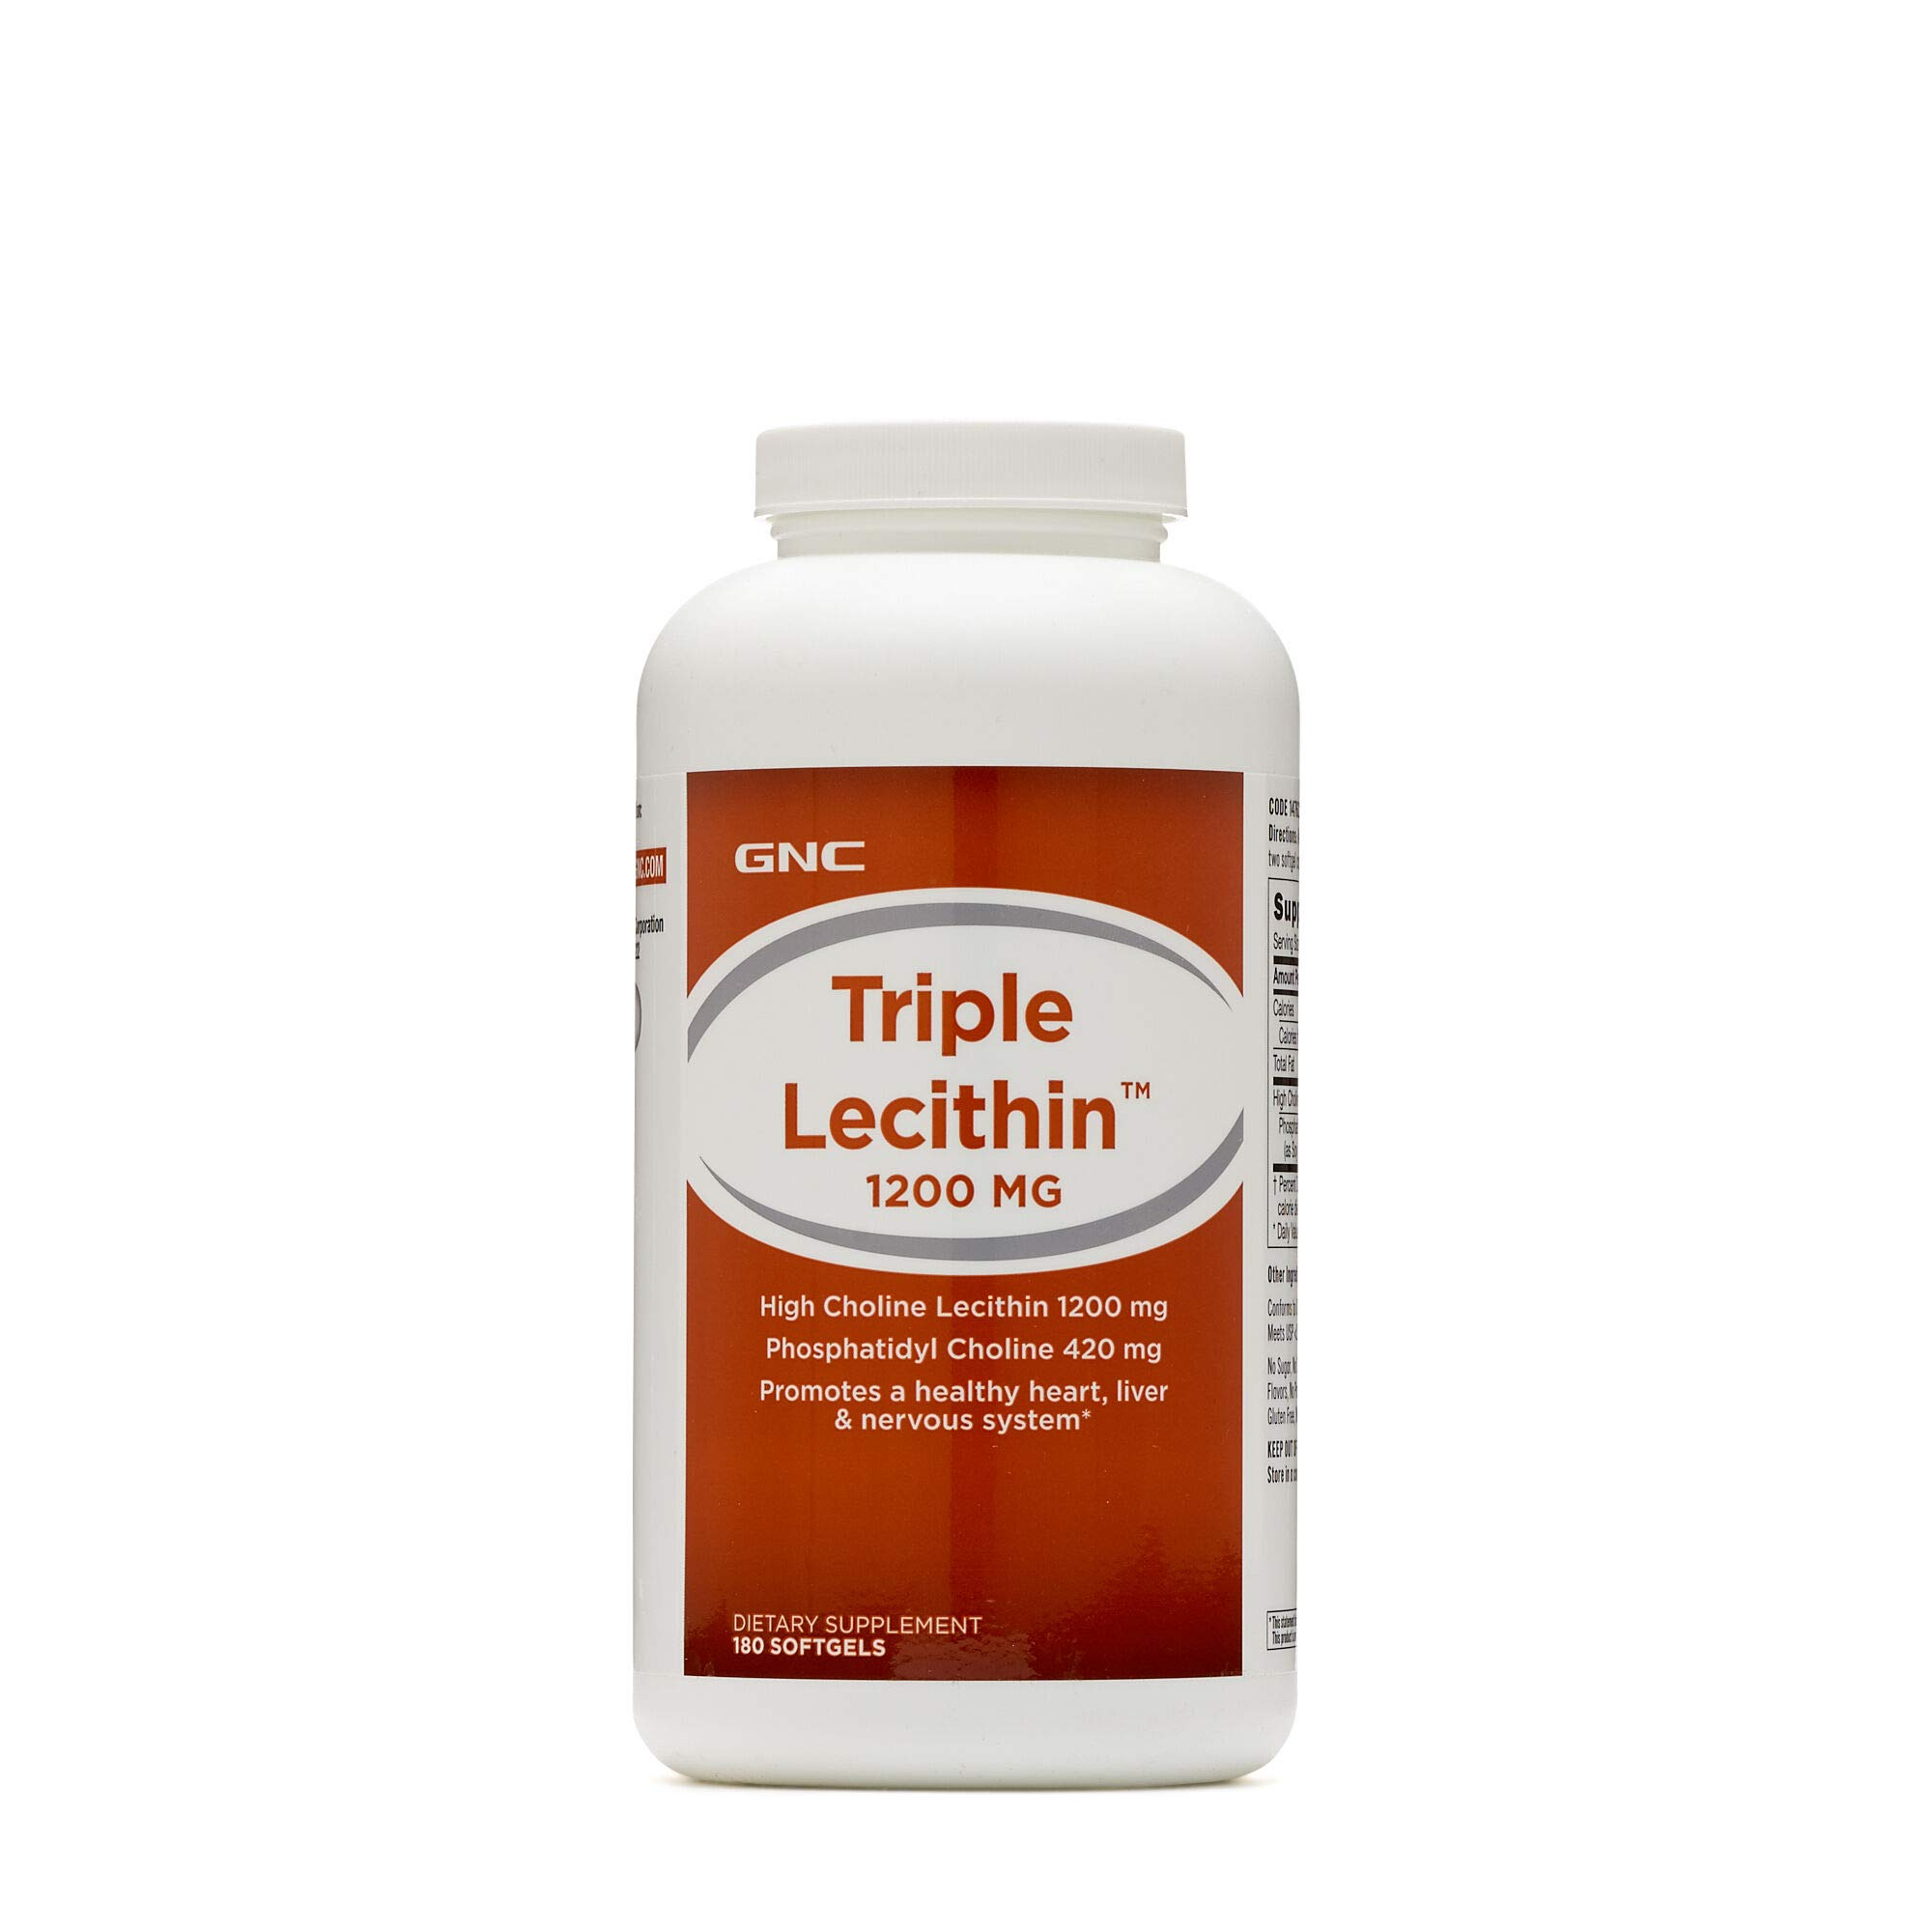 GNC Triple Lecithin 1200mg, 180 Softgels, Promotes a Healthy Heart, Liver and Nervous System by GNC